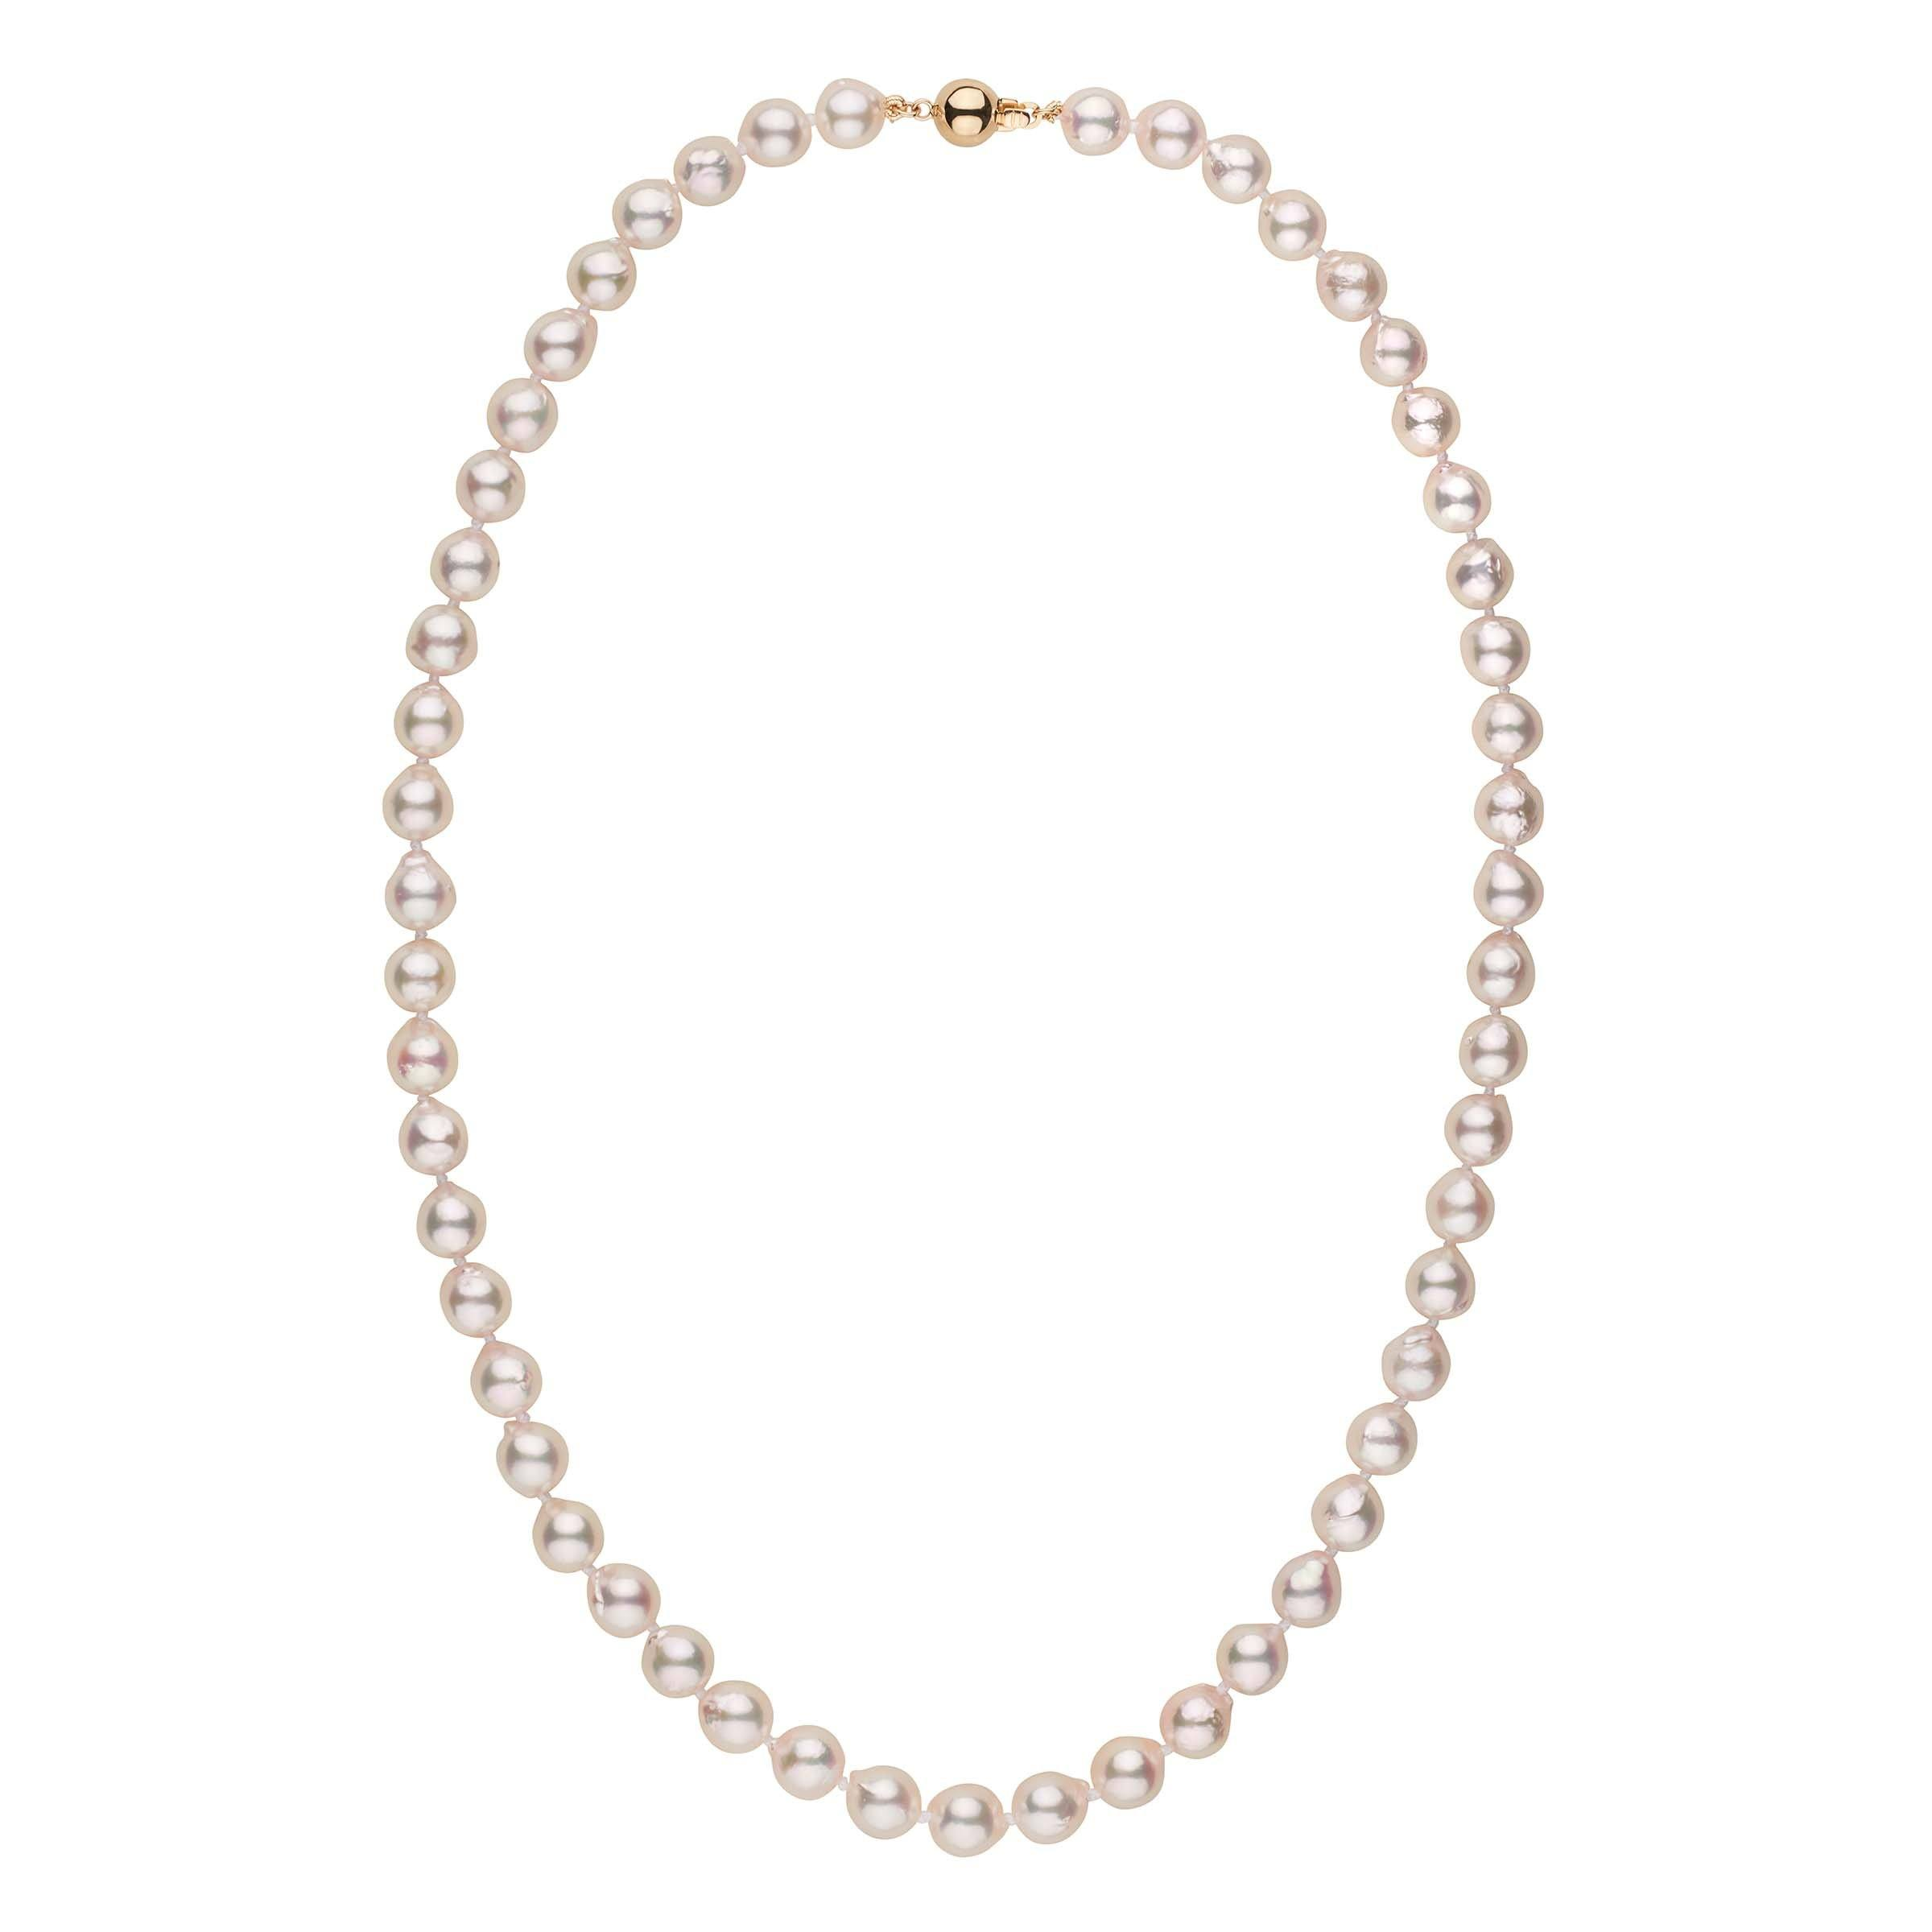 7.0-7.5 mm 18 Inch White Akoya Baroque Pearl Necklace